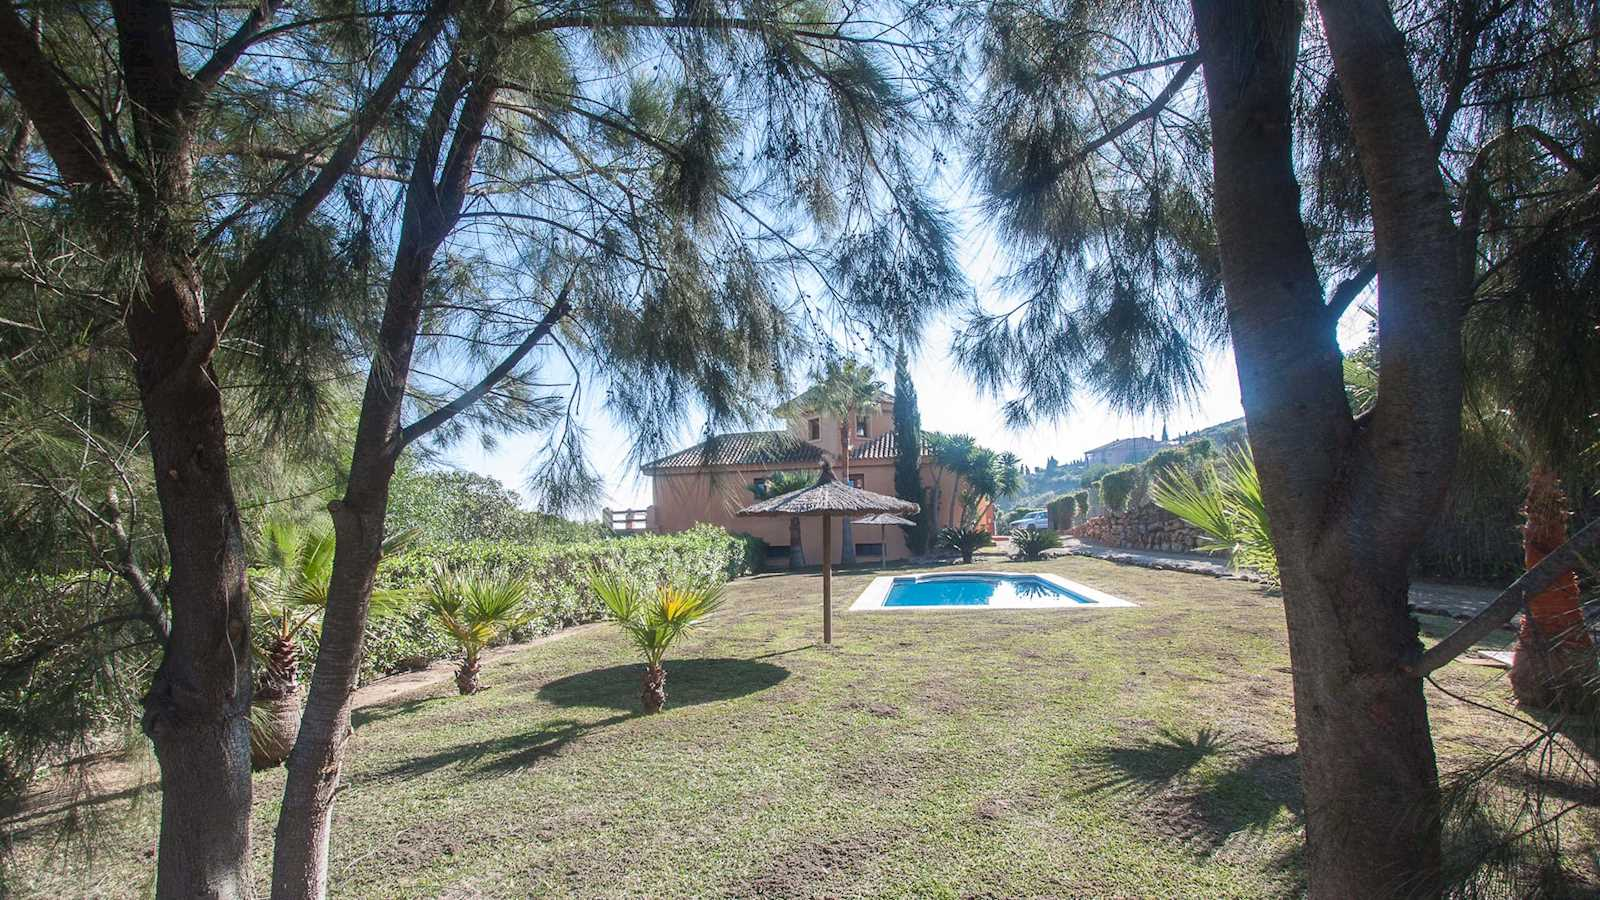 4 bedroom Finca/Country House for sale in Manilva with pool garage - € 790,000 (Ref: 2005342)